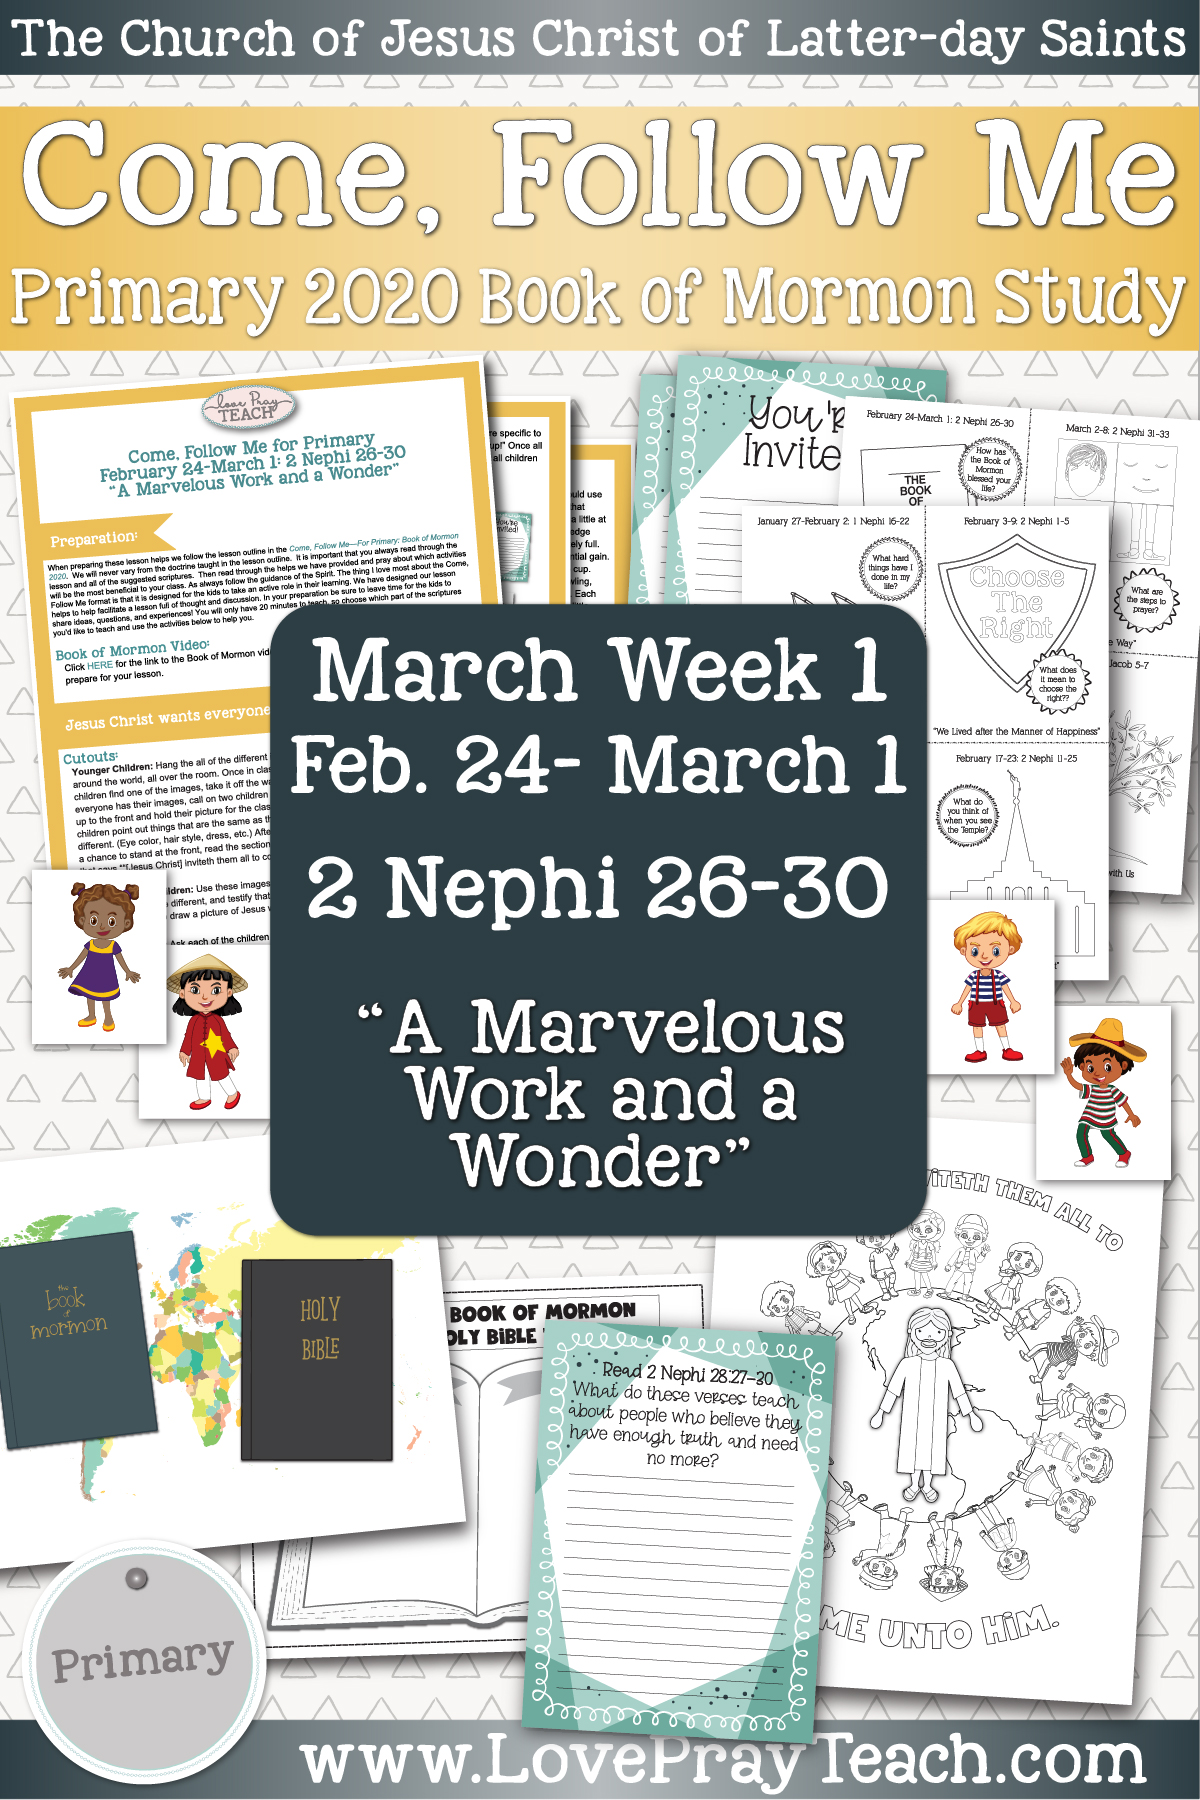 """Come, Follow Me for Primary March Week 1: February 24 - March 1 2 Nephi 26-30 """"A Marvelous Work and a Wonder"""" www.LovePrayTeach.com"""